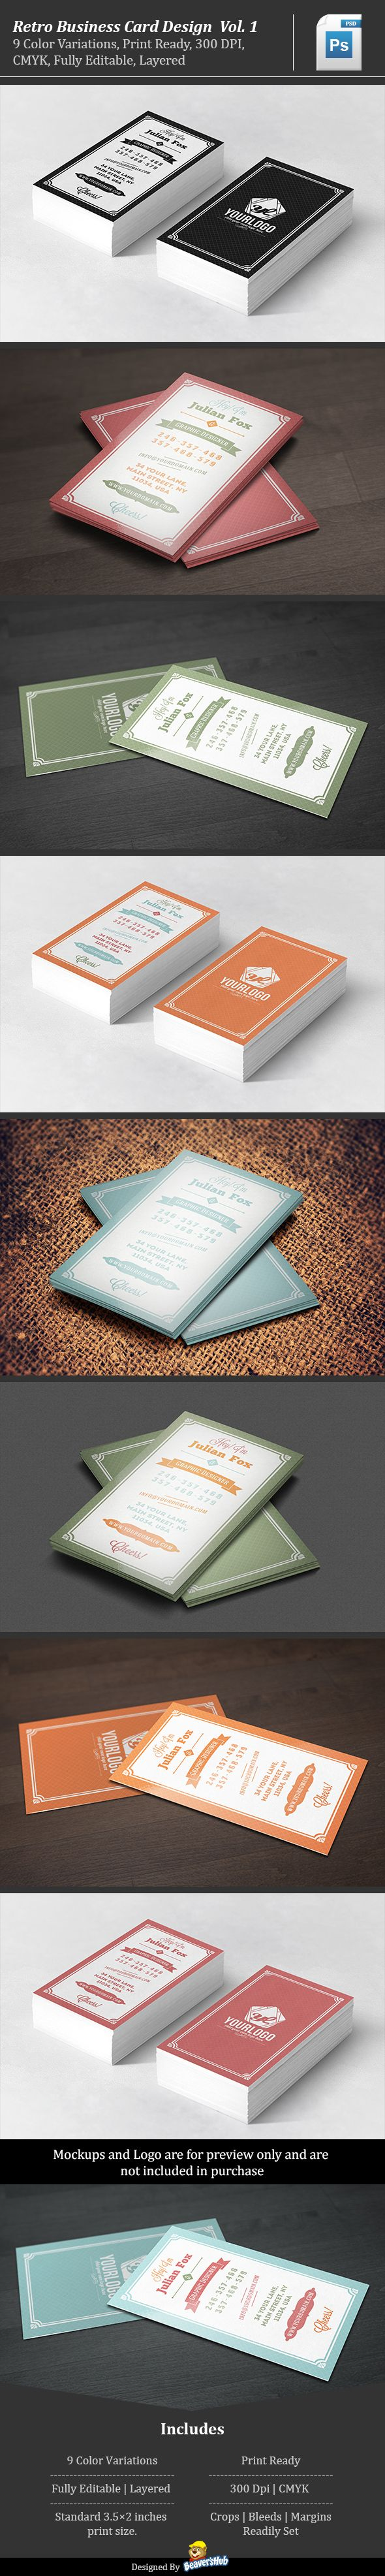 222 best business card images on pinterest cards design and 222 best business card images on pinterest cards design and graphics magicingreecefo Image collections